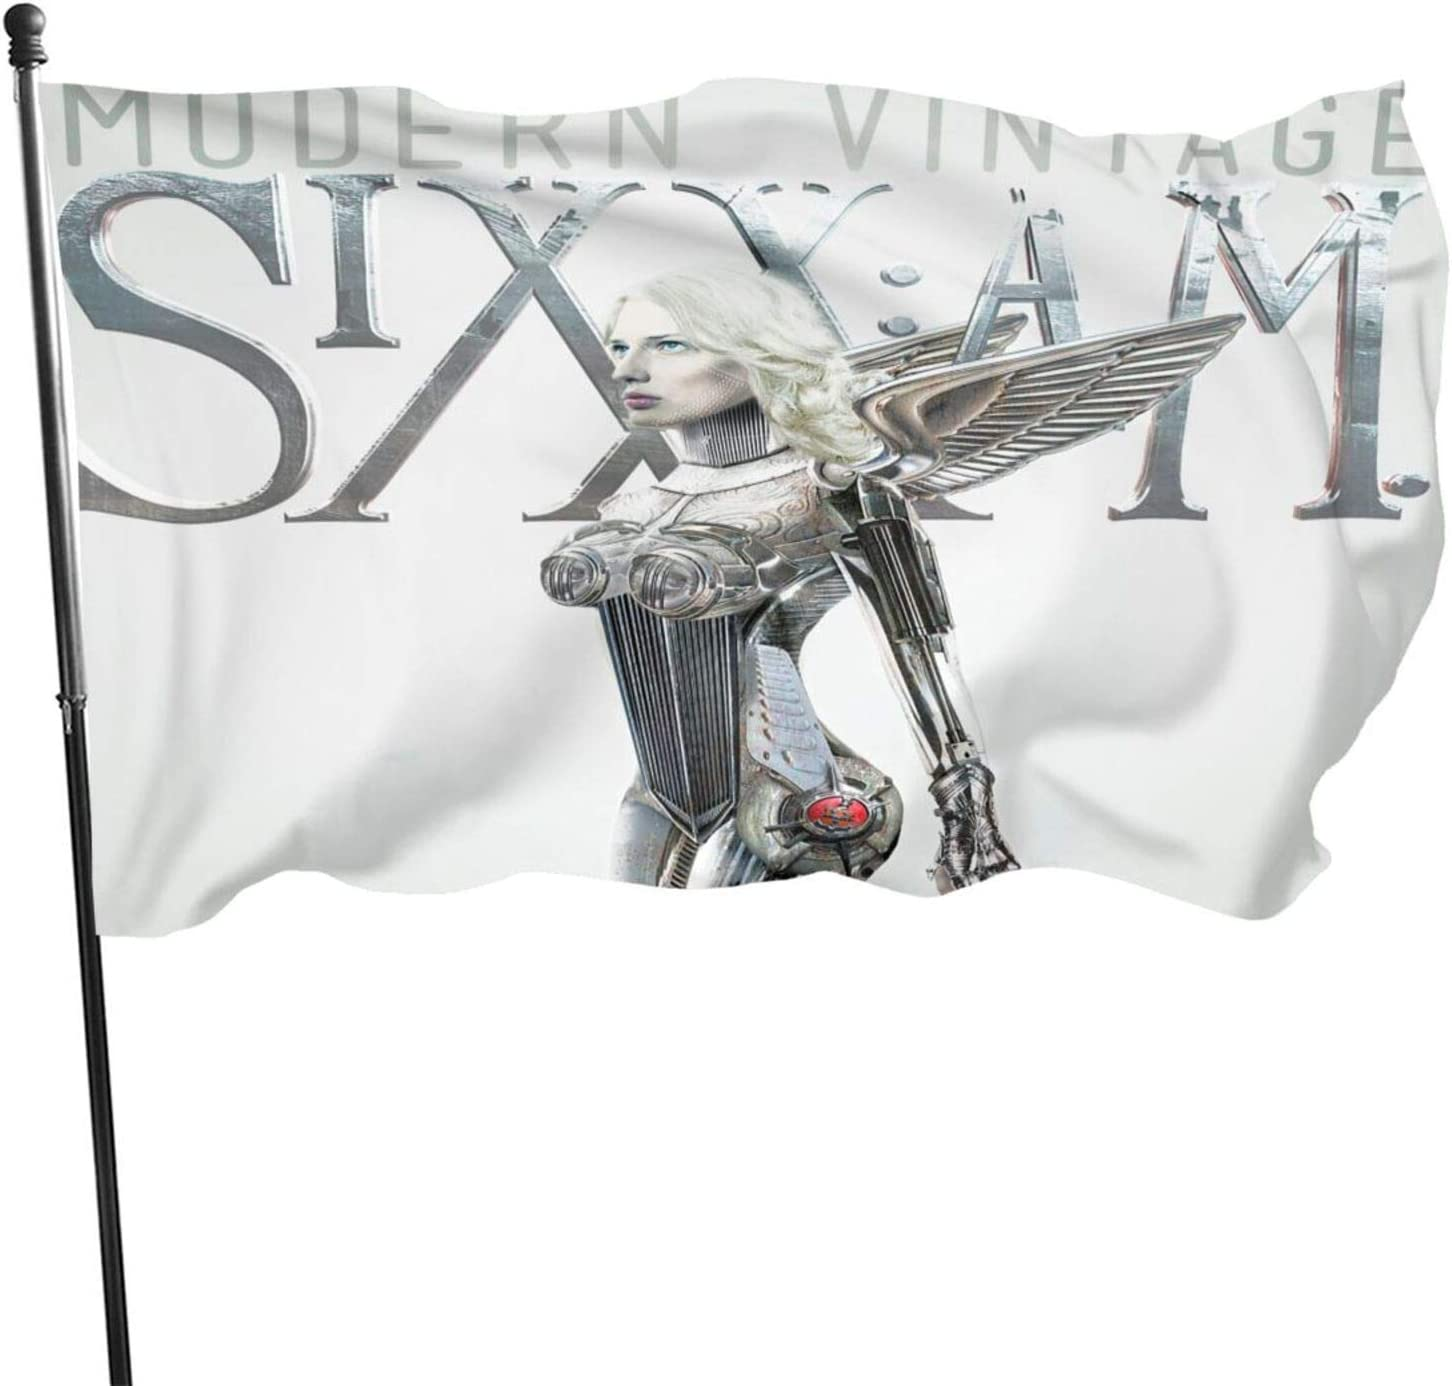 Sixx Am Modern Vintage Garden Flag Personalized Decoration Banner Indoor Outdoor Courtyard Sign Farm Party Activities 3 X 5 Ft